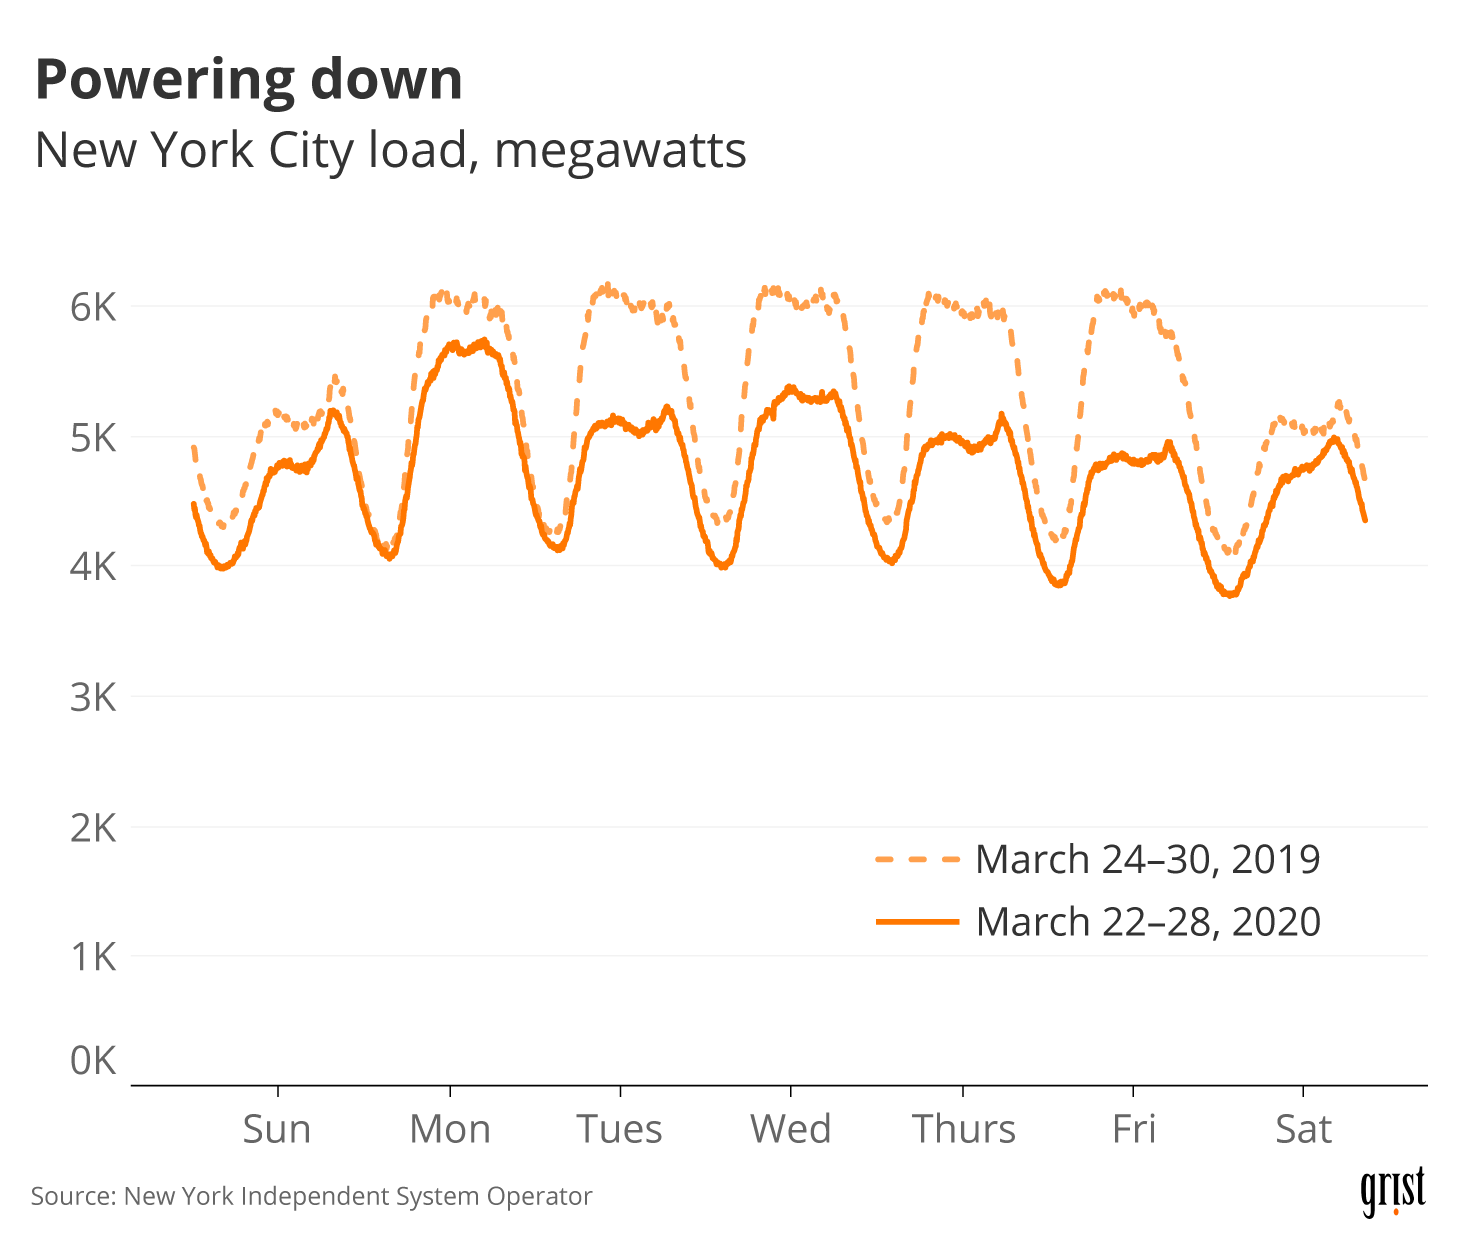 A line chart showing NYC electricity load in late March 2020 versus late March 2019. Load was lower in 2020.